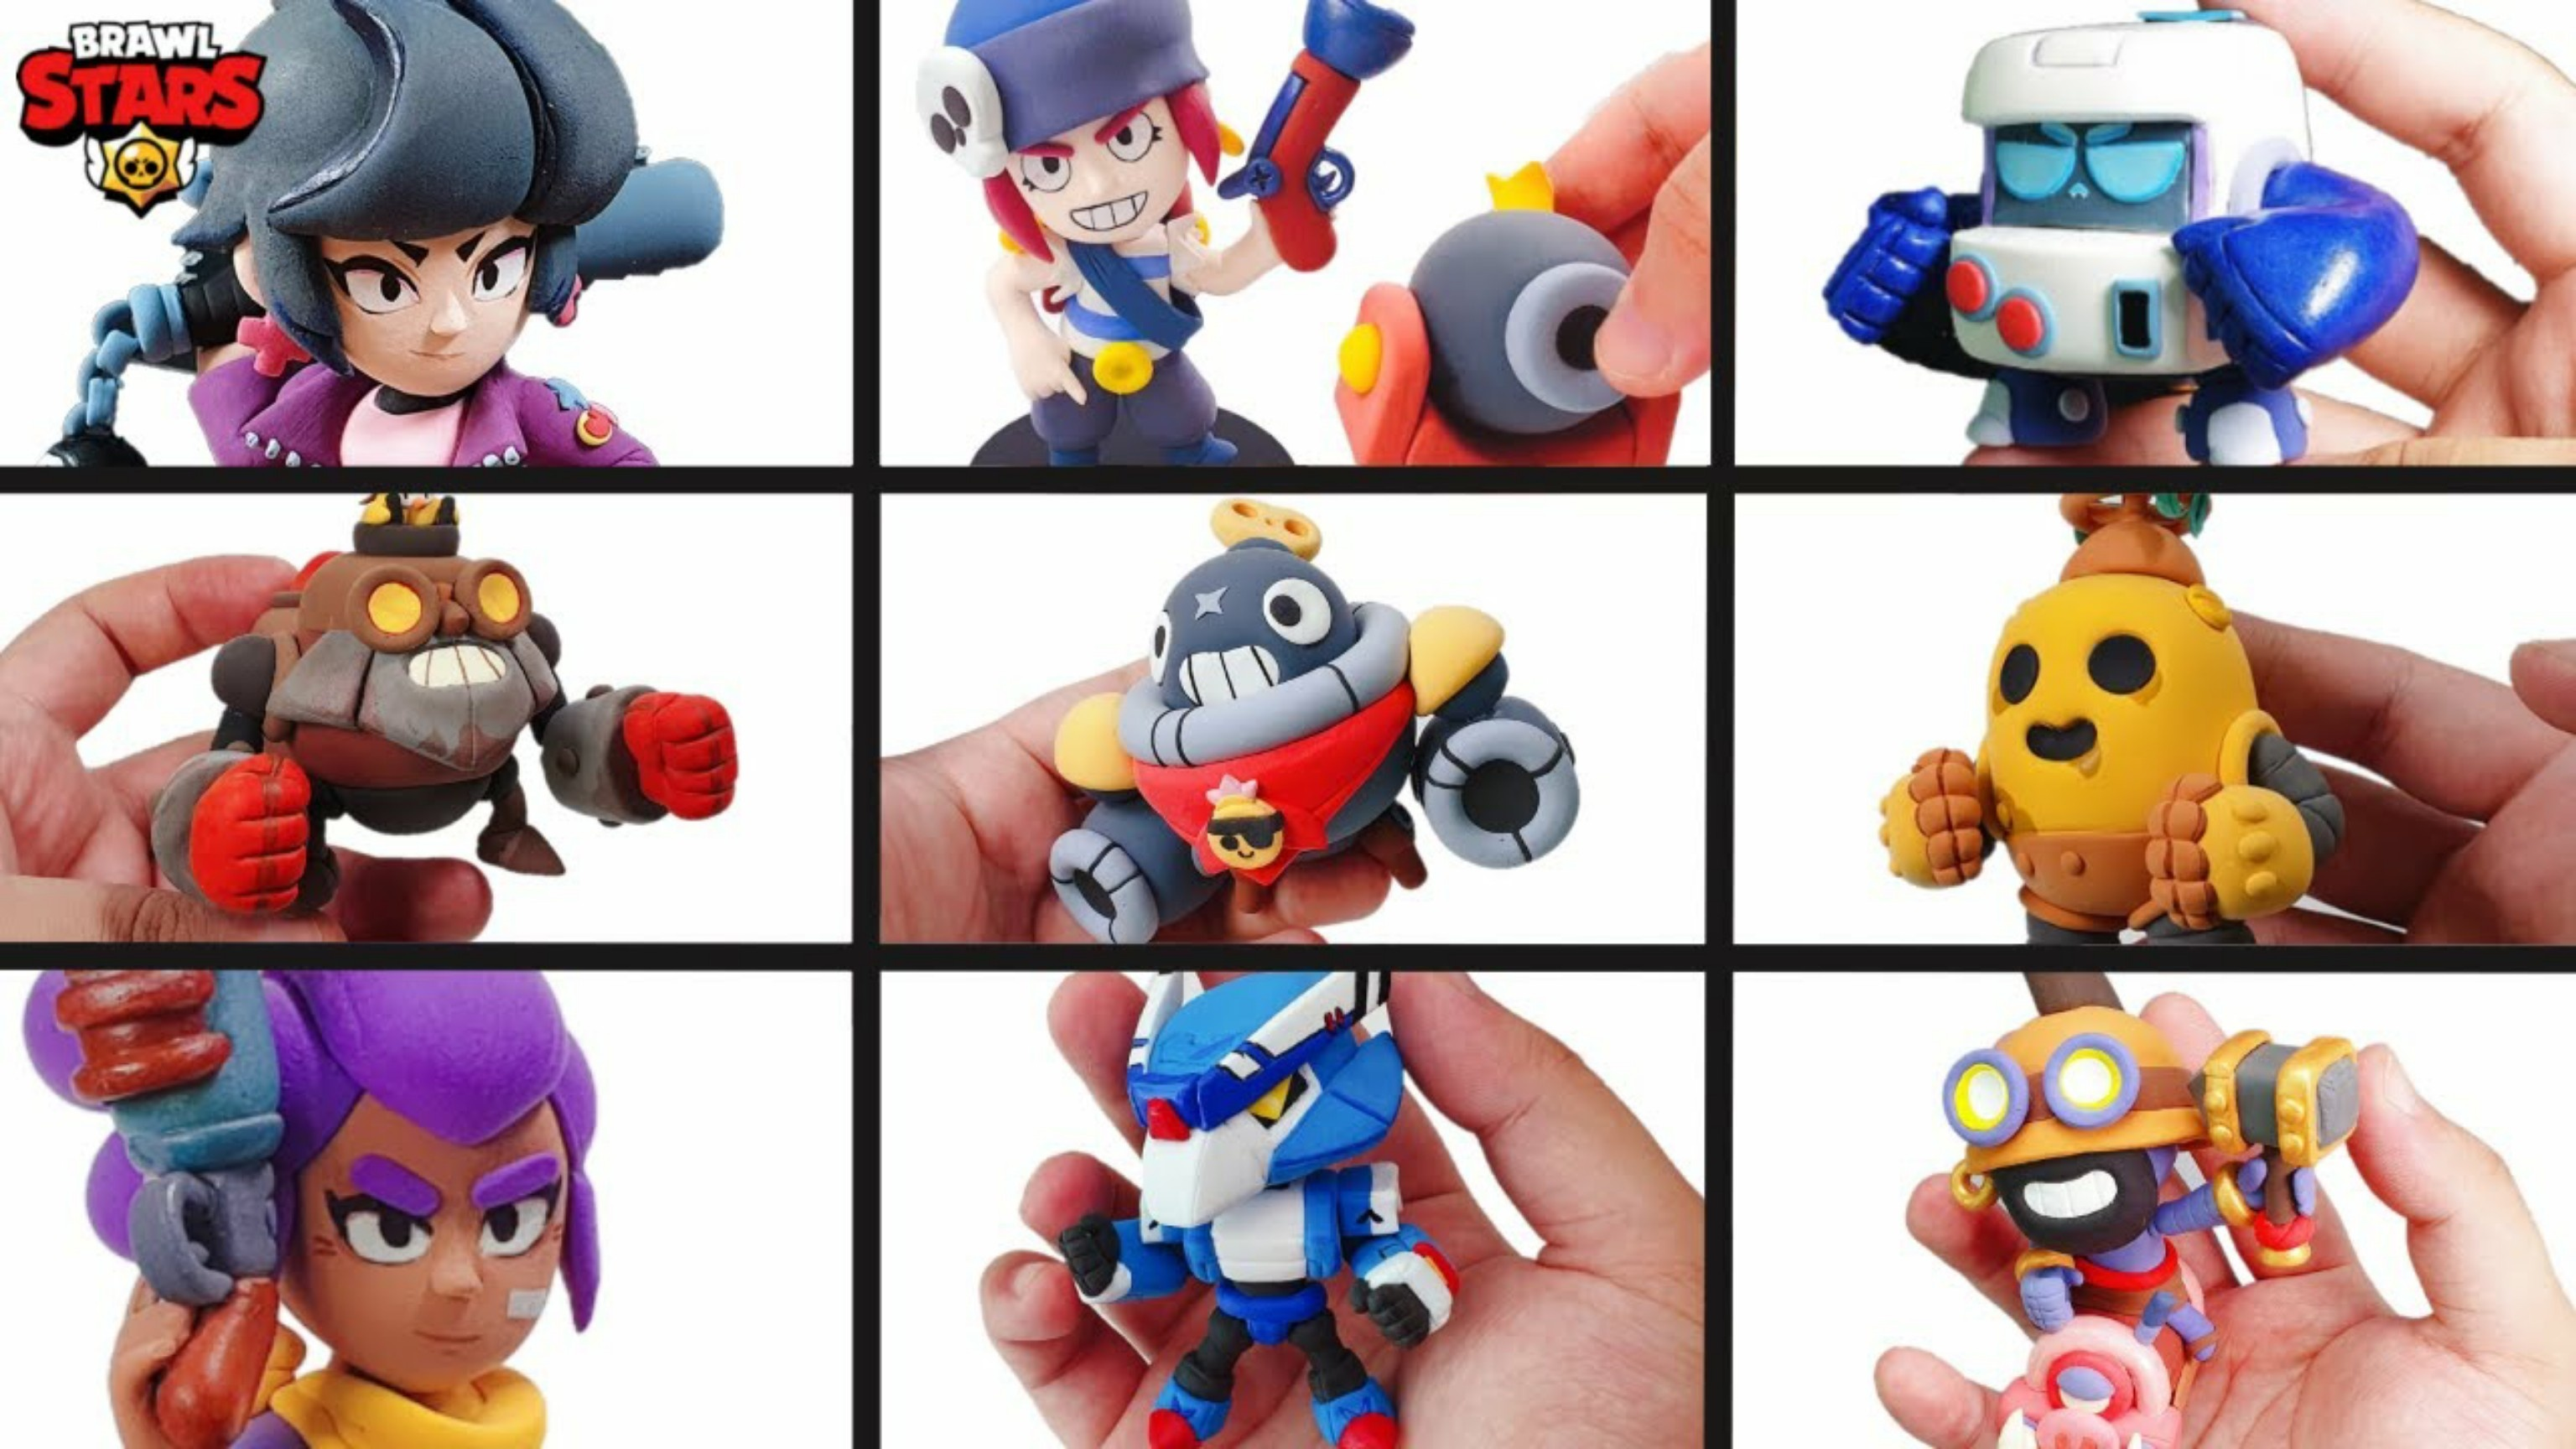 Brawl Stars Figures, handmade with polymer clay - Several options available